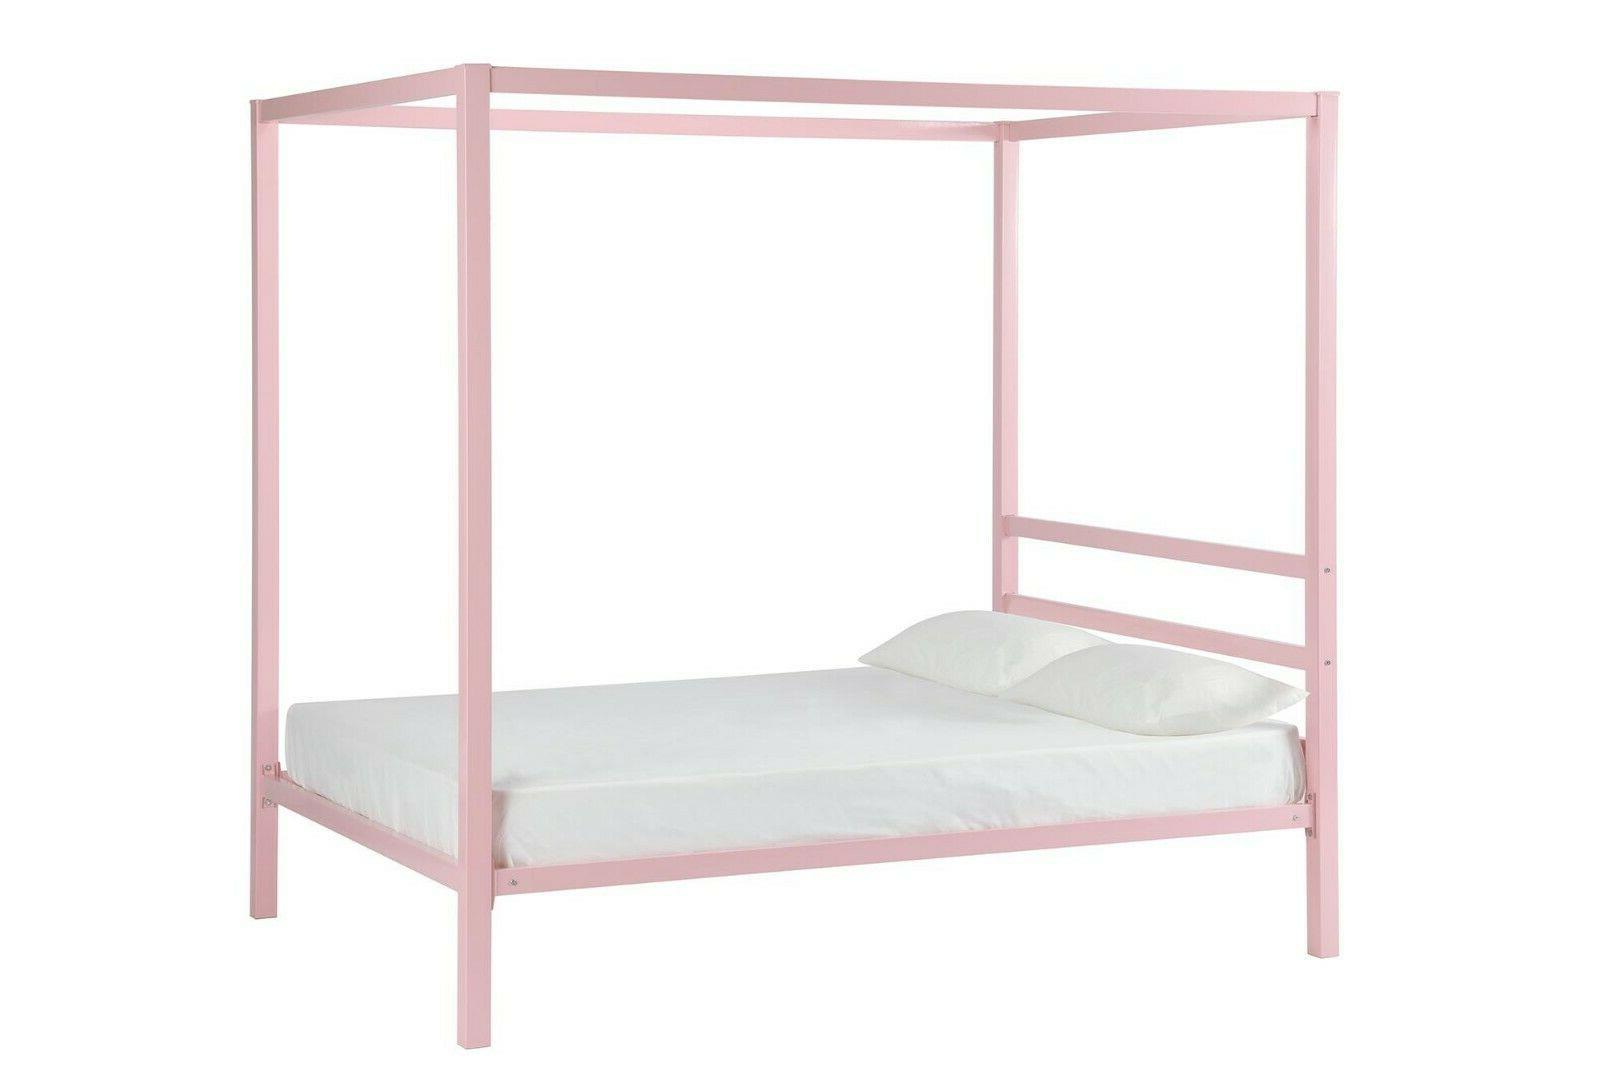 RealRooms Metal Canopy Modern Bed Frame, Colors and